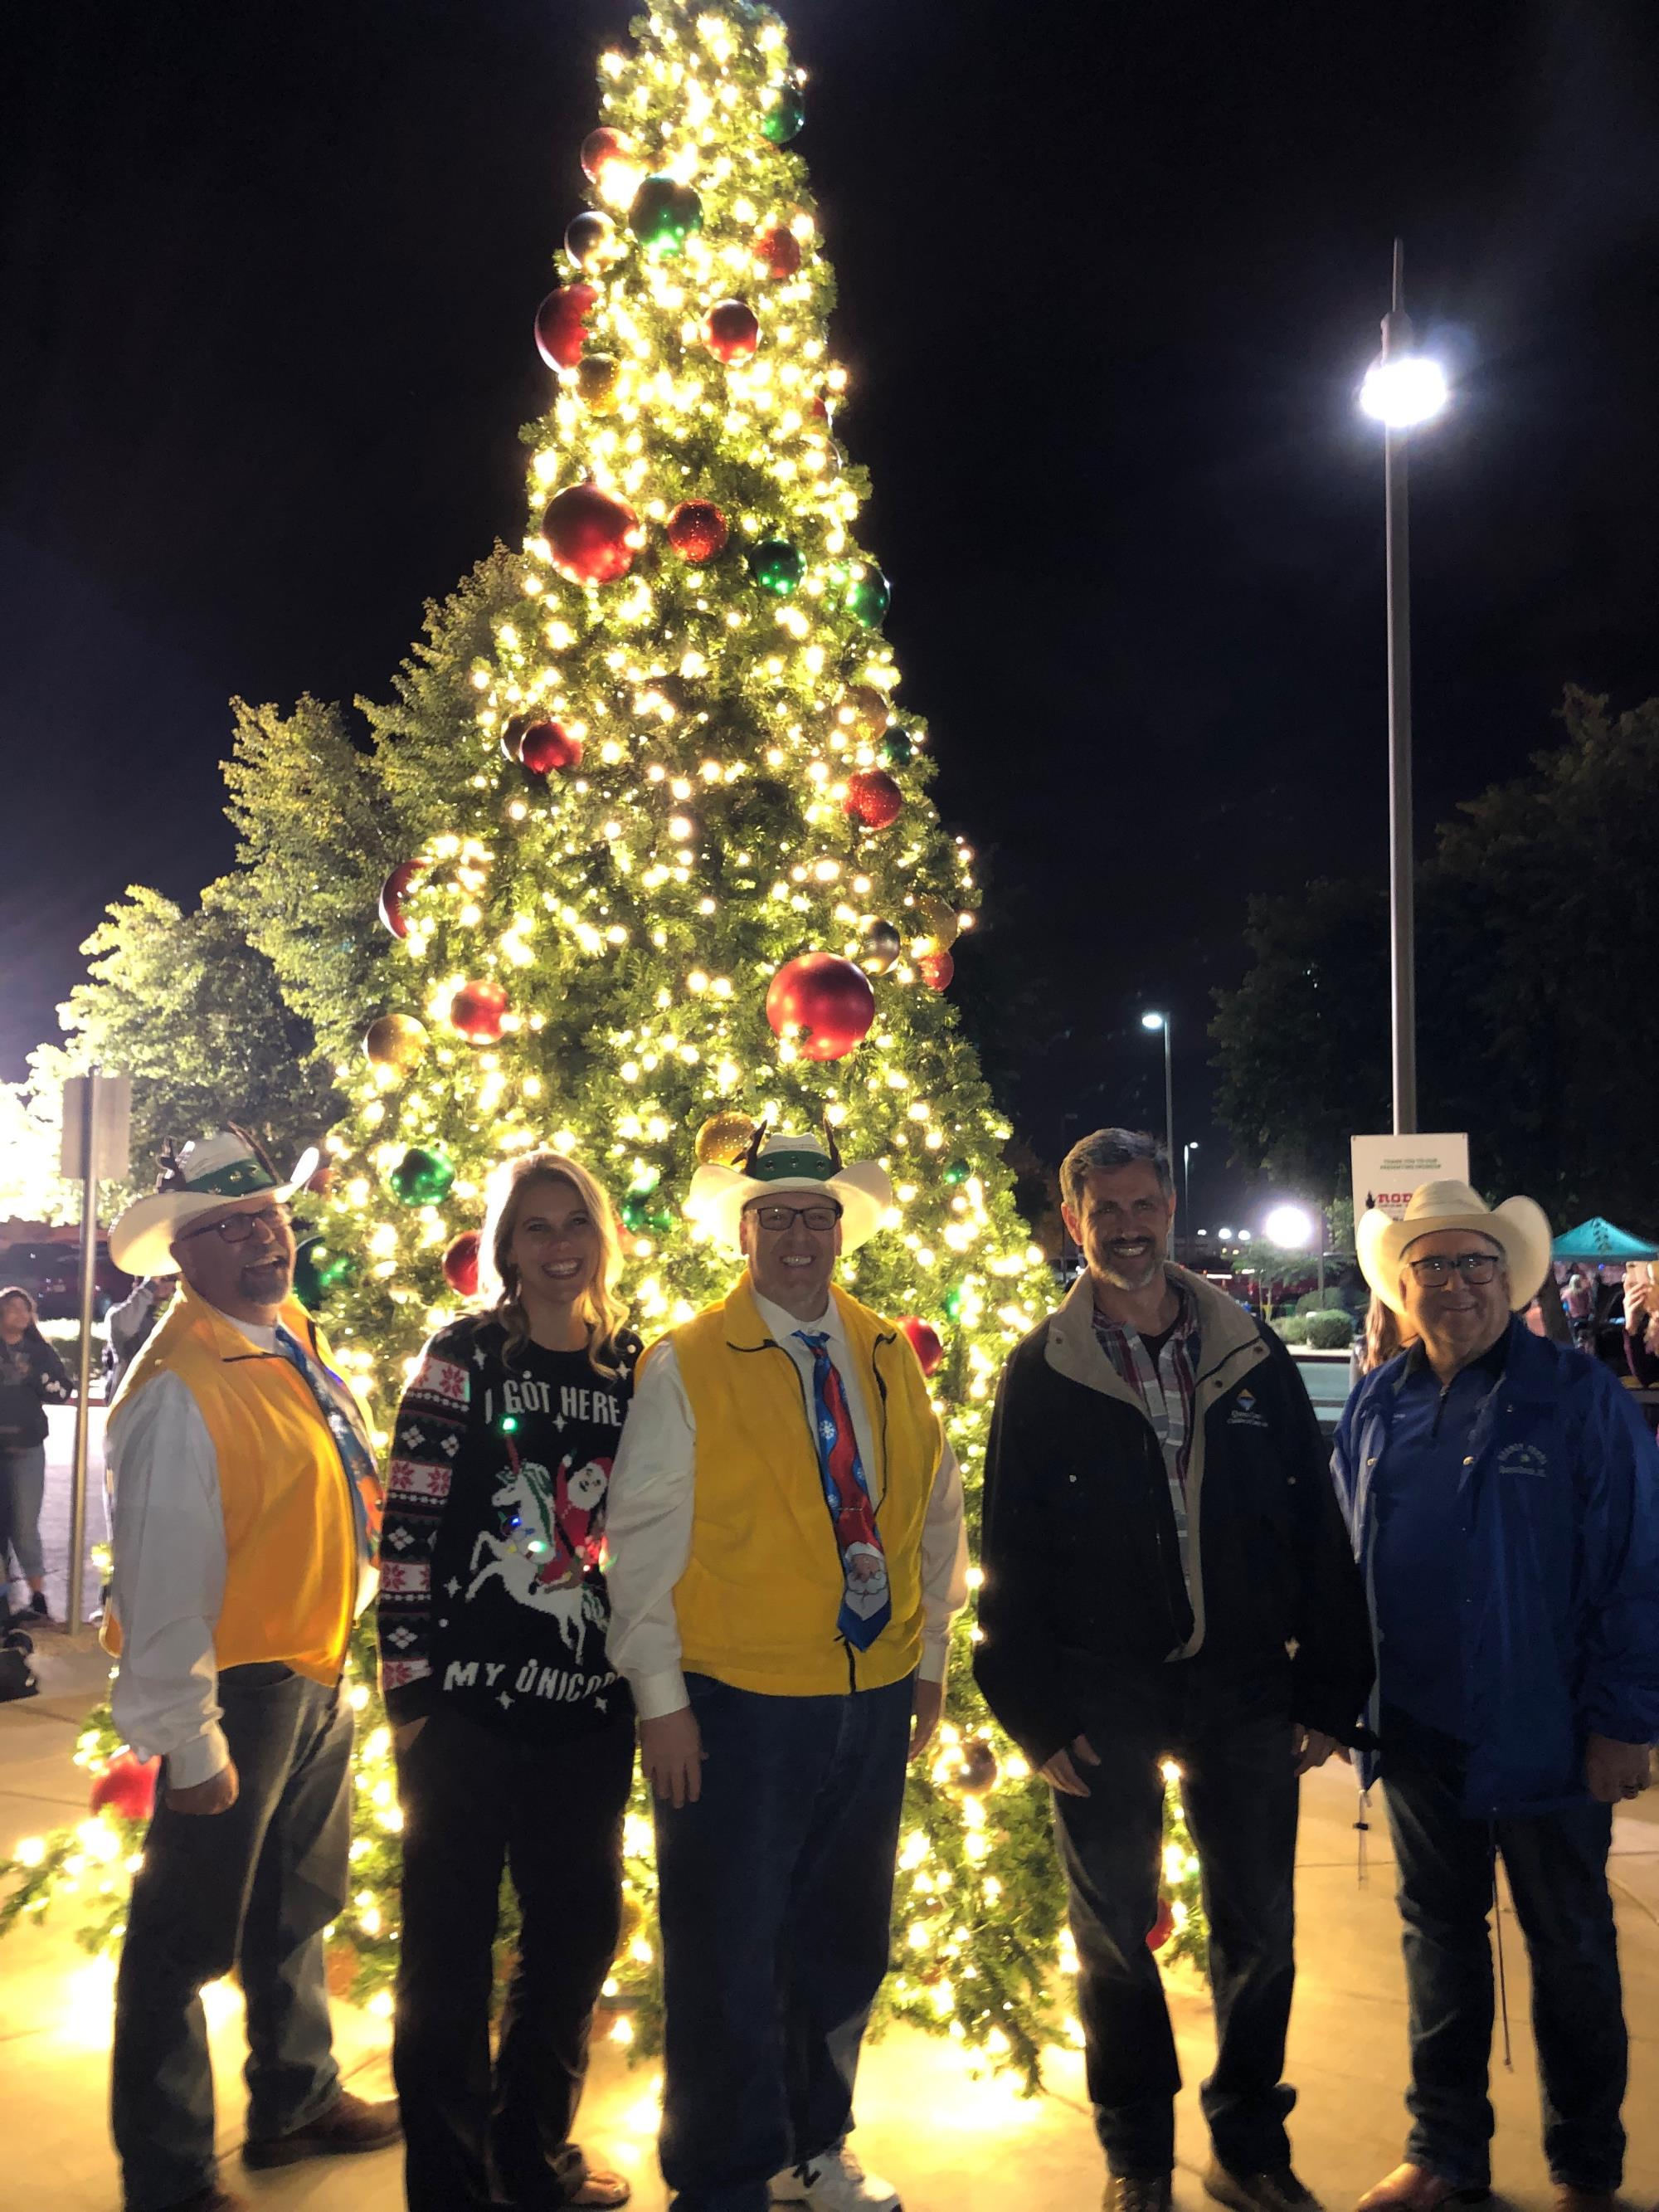 Mayor Barney with Council Members Benning, Brown, and Wheatley at the Christmas Tree Lighting Ceremony on December 1